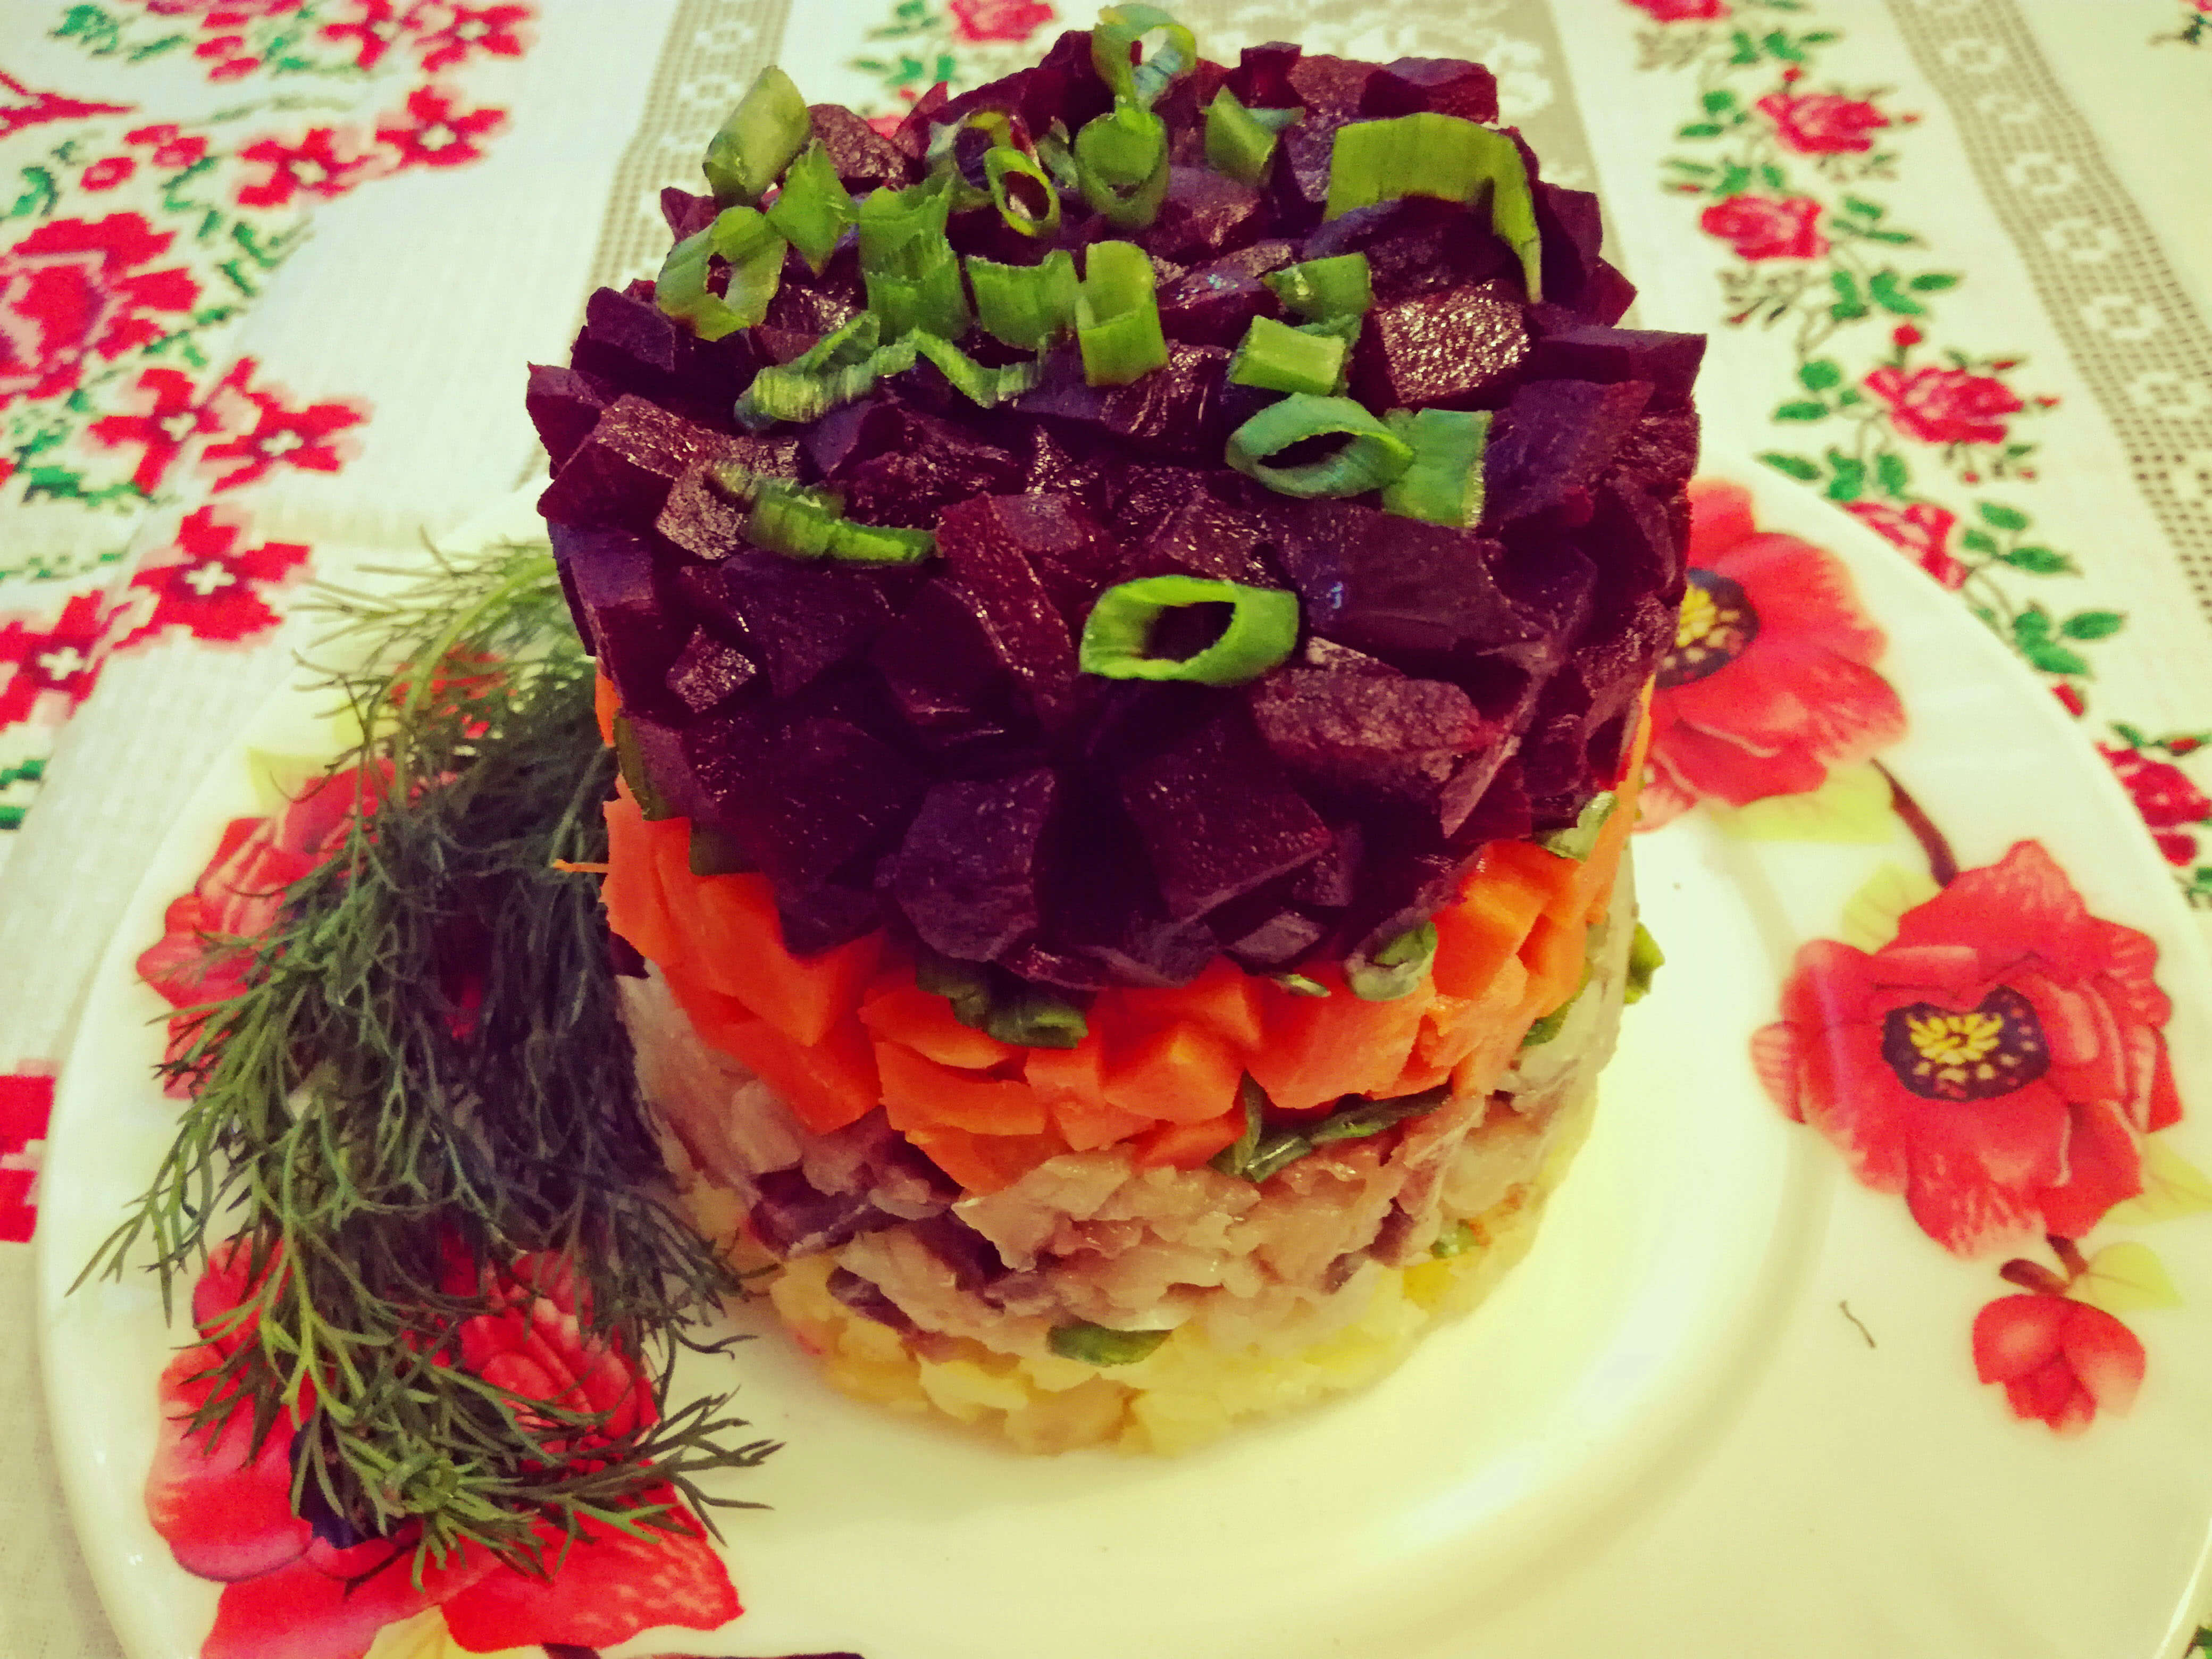 LAYERED PICKLED HERRING SALAD WITH TART APPLES AND RED ONION